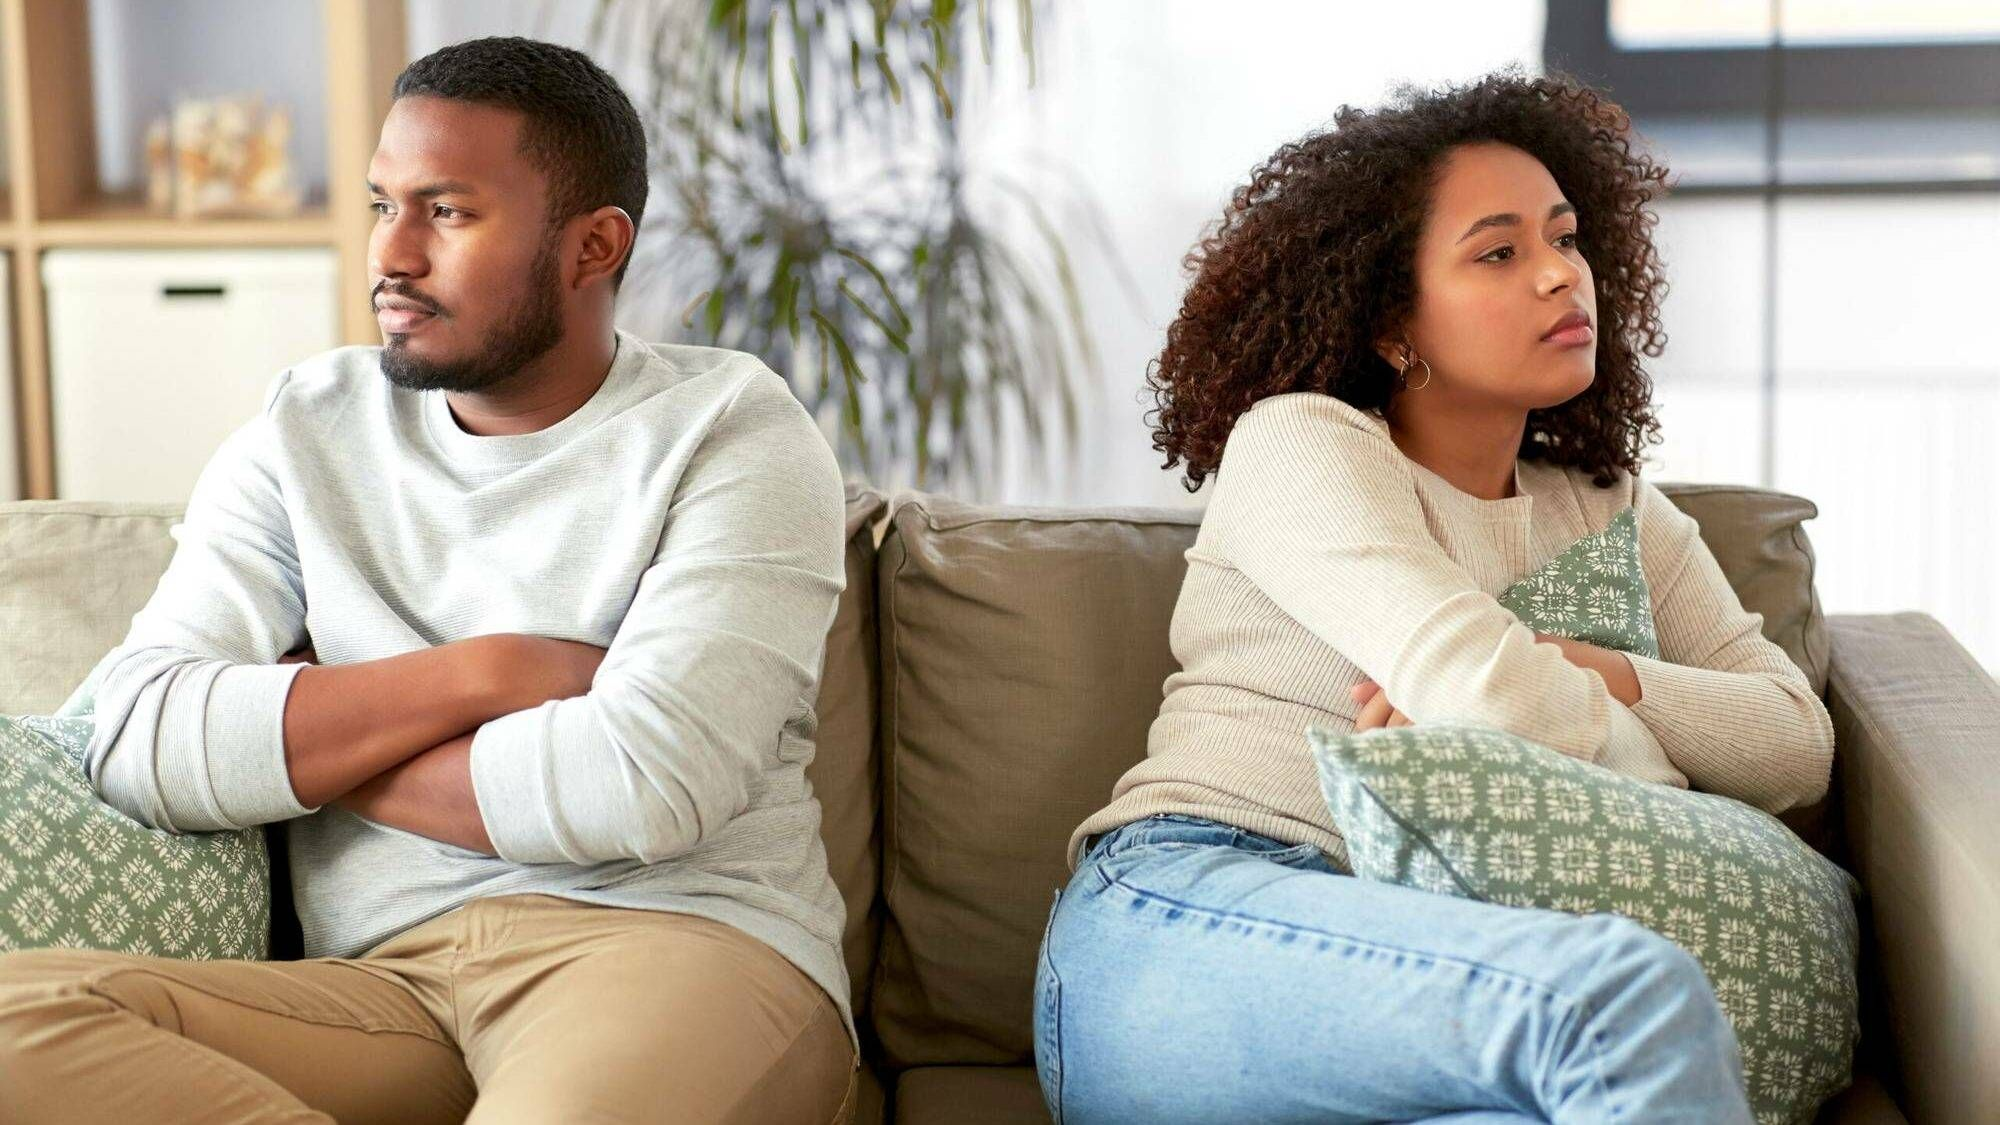 unhappy couple sitting on couch and having argument at home. Rewire PBS Love Couples therapy